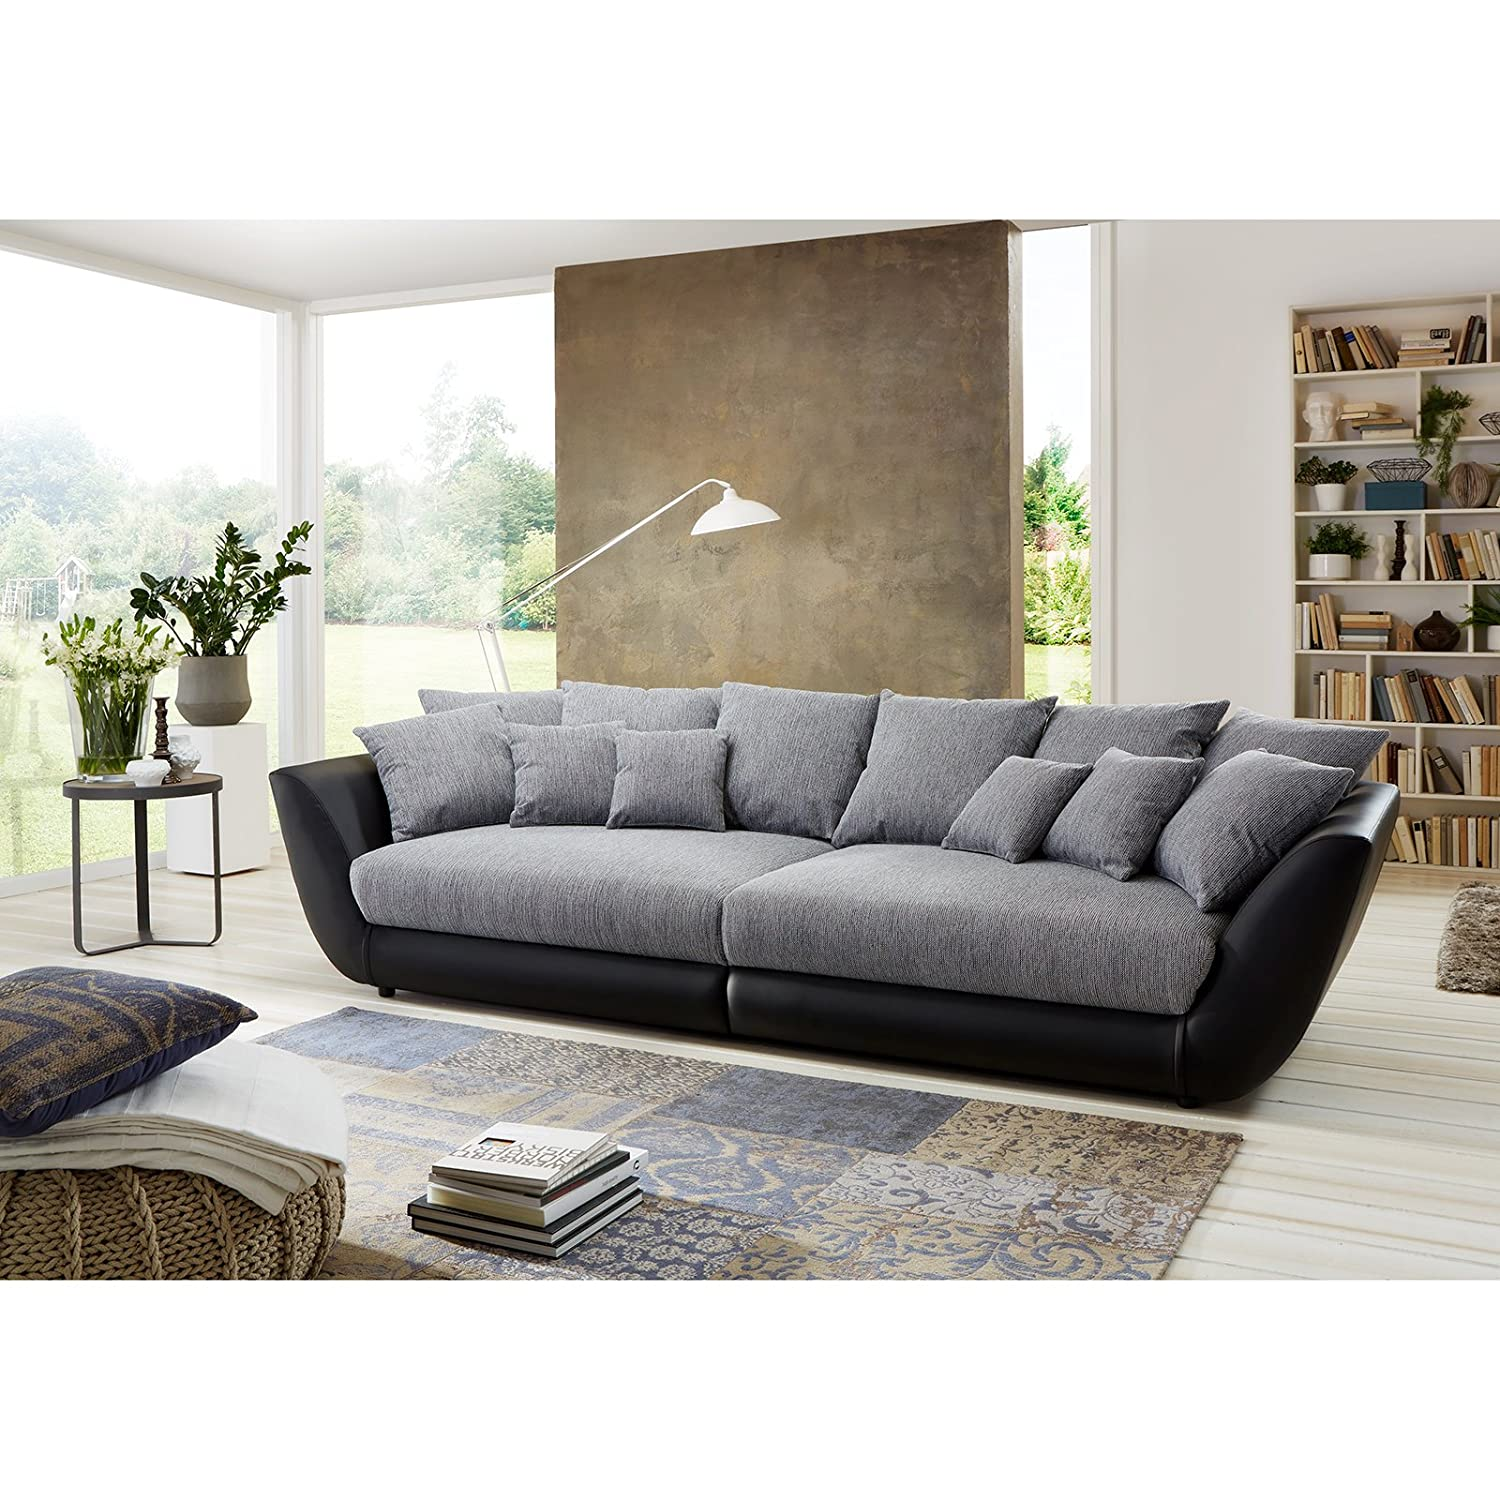 federkern couch top federkern couch with federkern couch top with federkern couch stunning. Black Bedroom Furniture Sets. Home Design Ideas